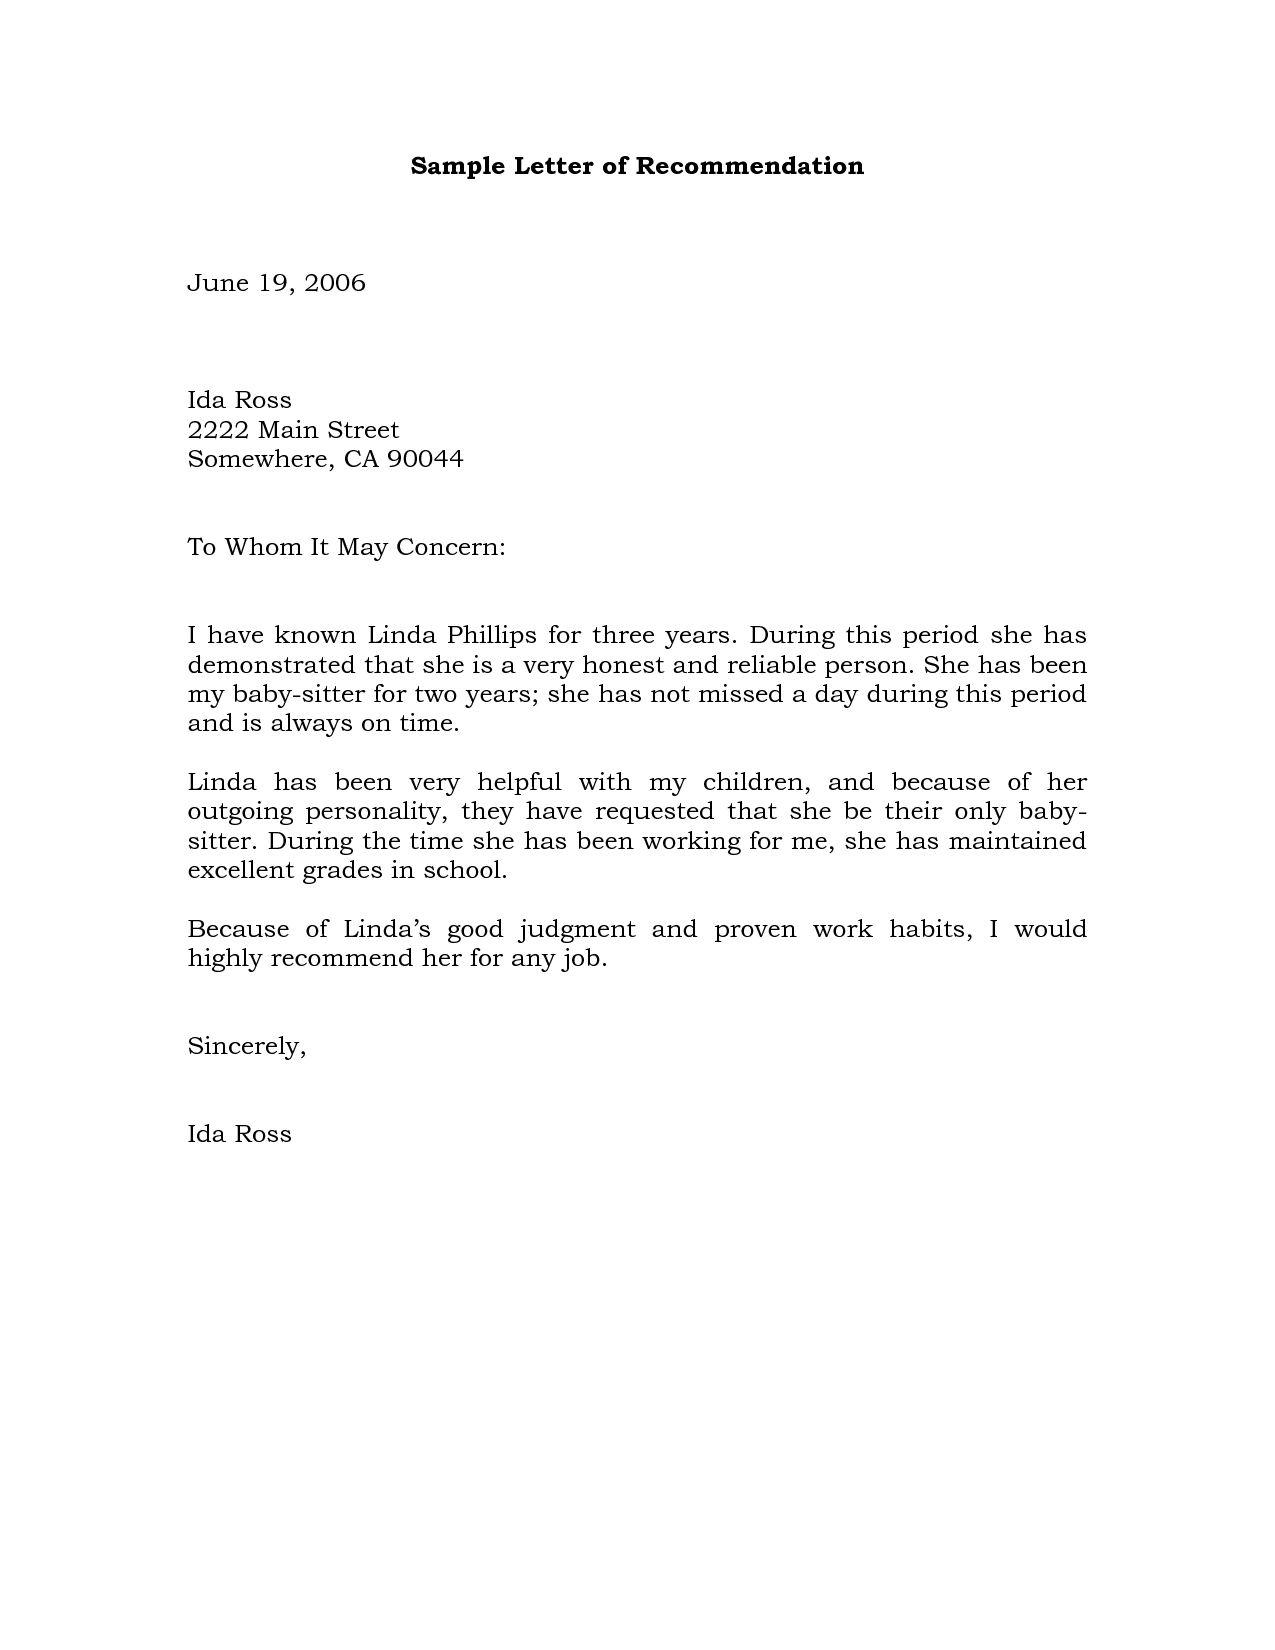 Professional Reference Letter Template Word - Sample Re Mendation Letter Example Projects to Try